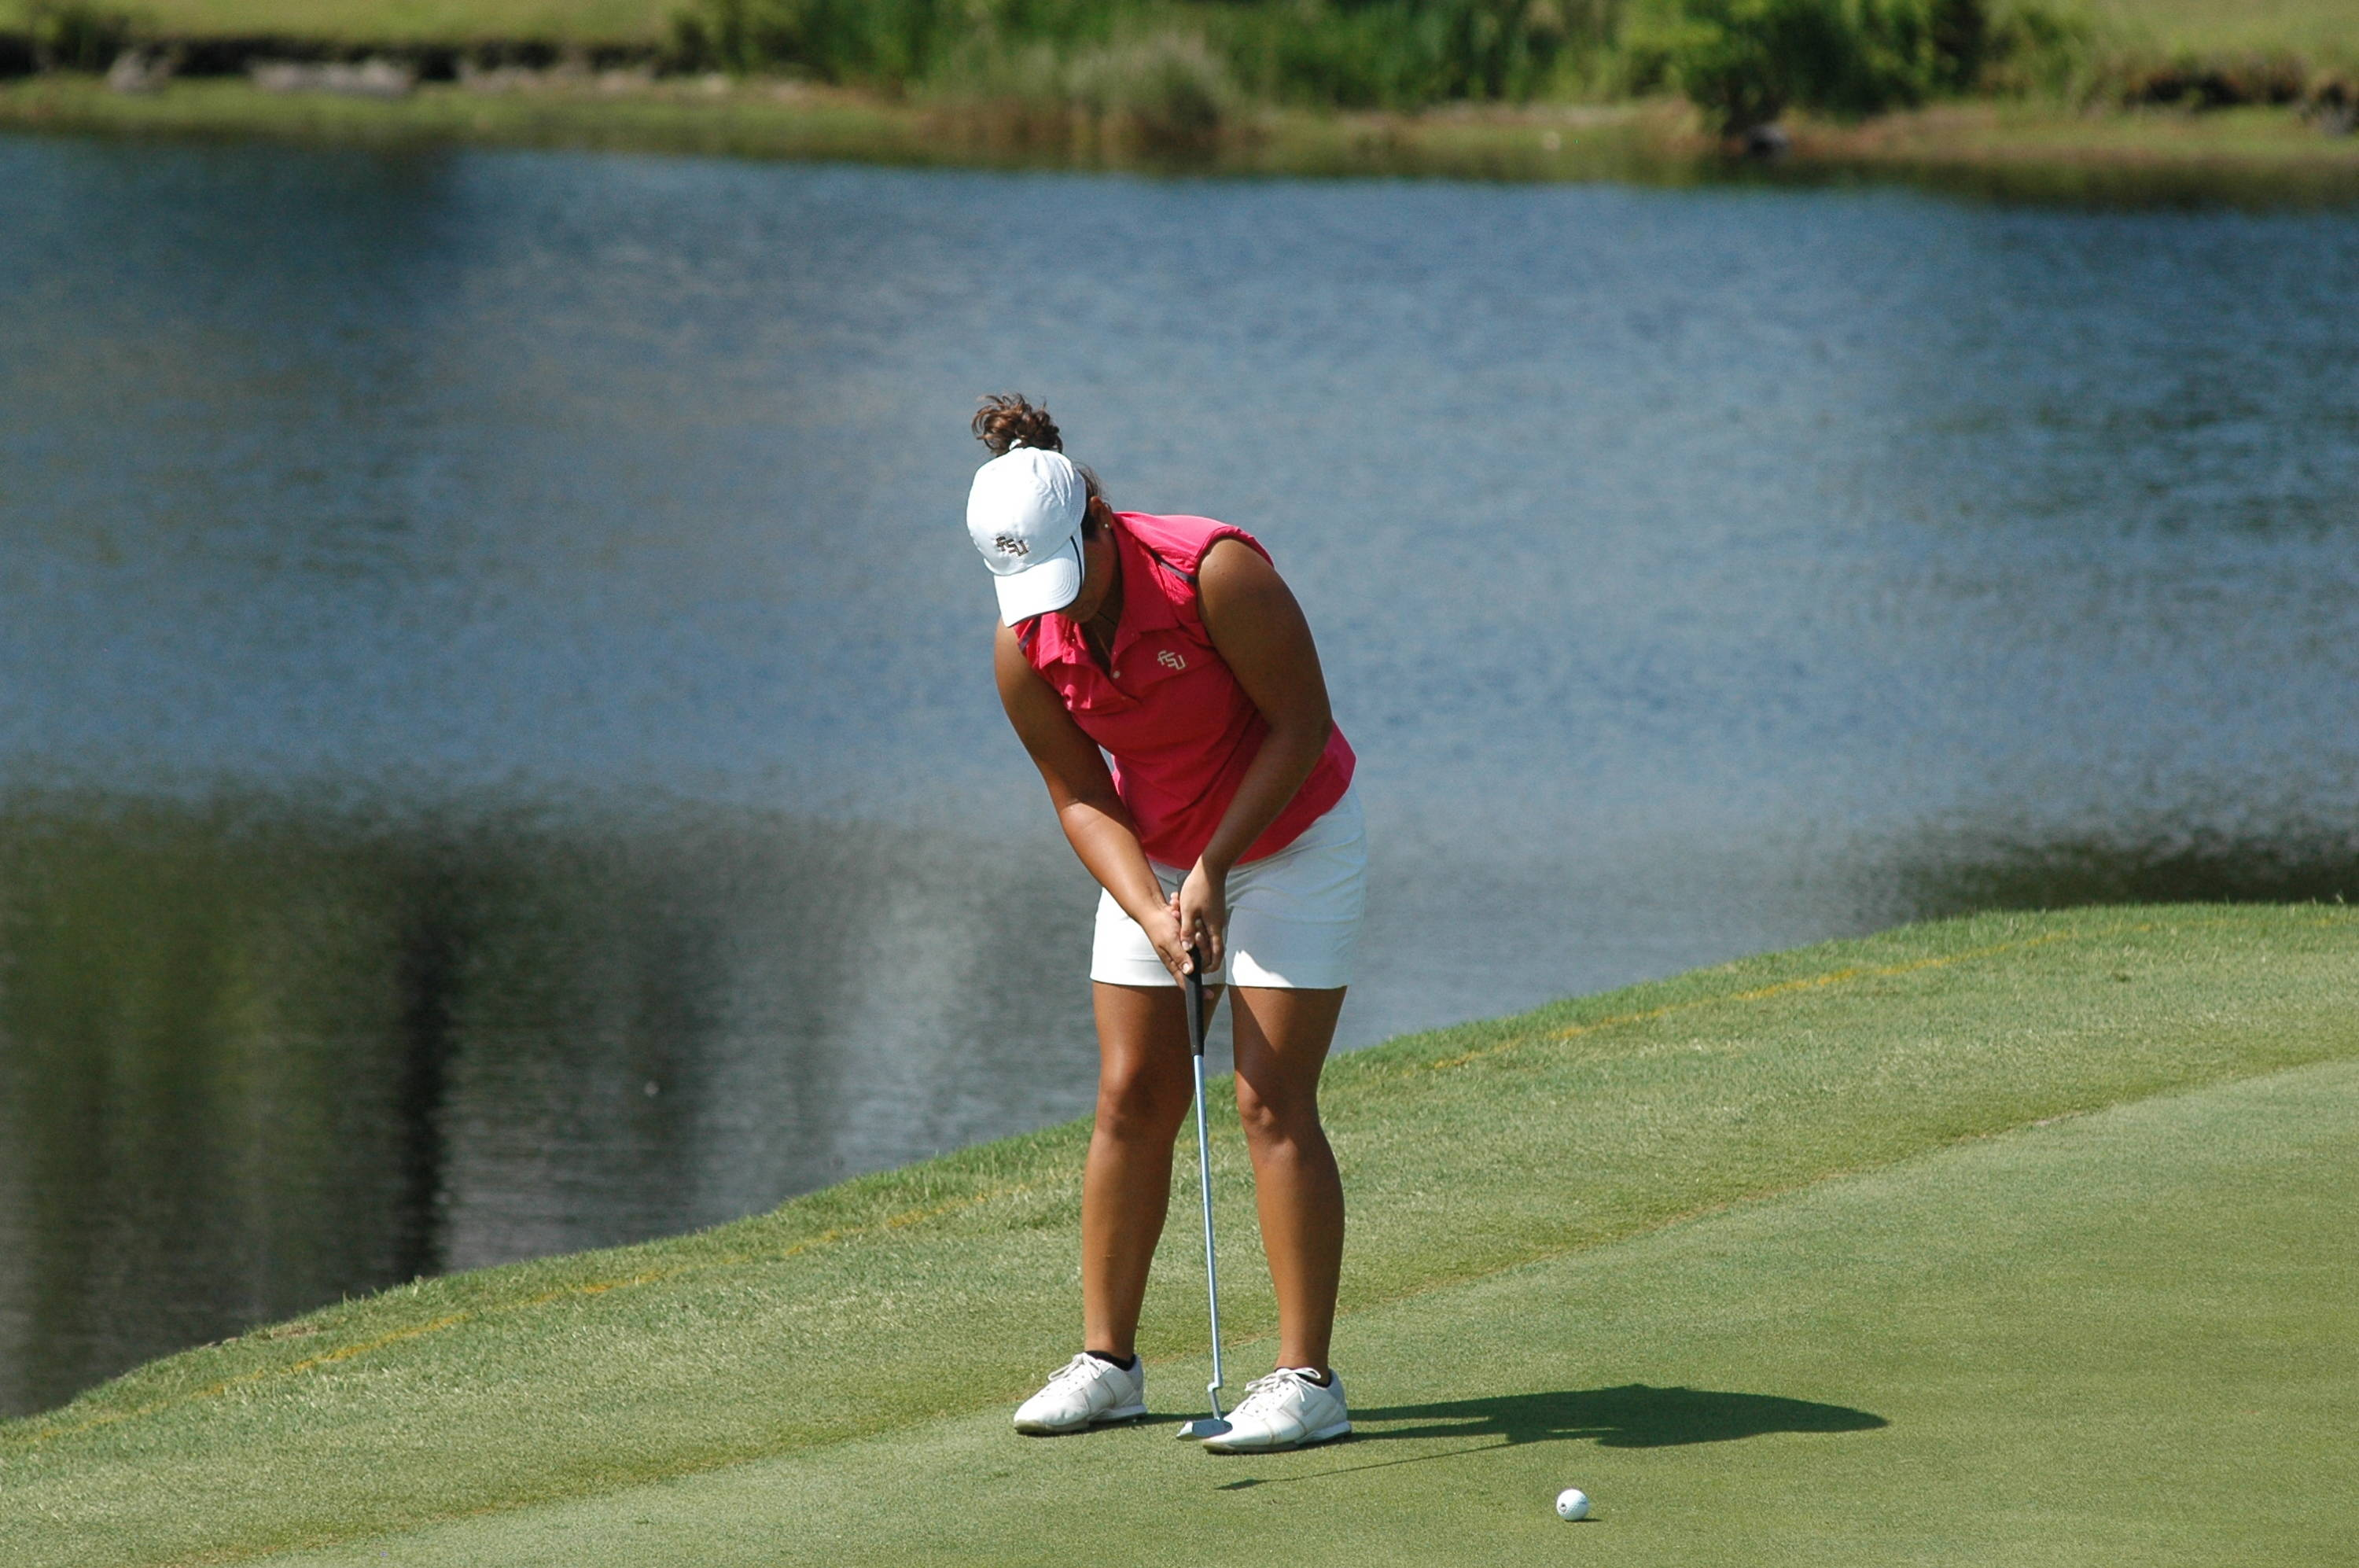 Jessica Negron - NCAA Women's Golf 2010 Day 4